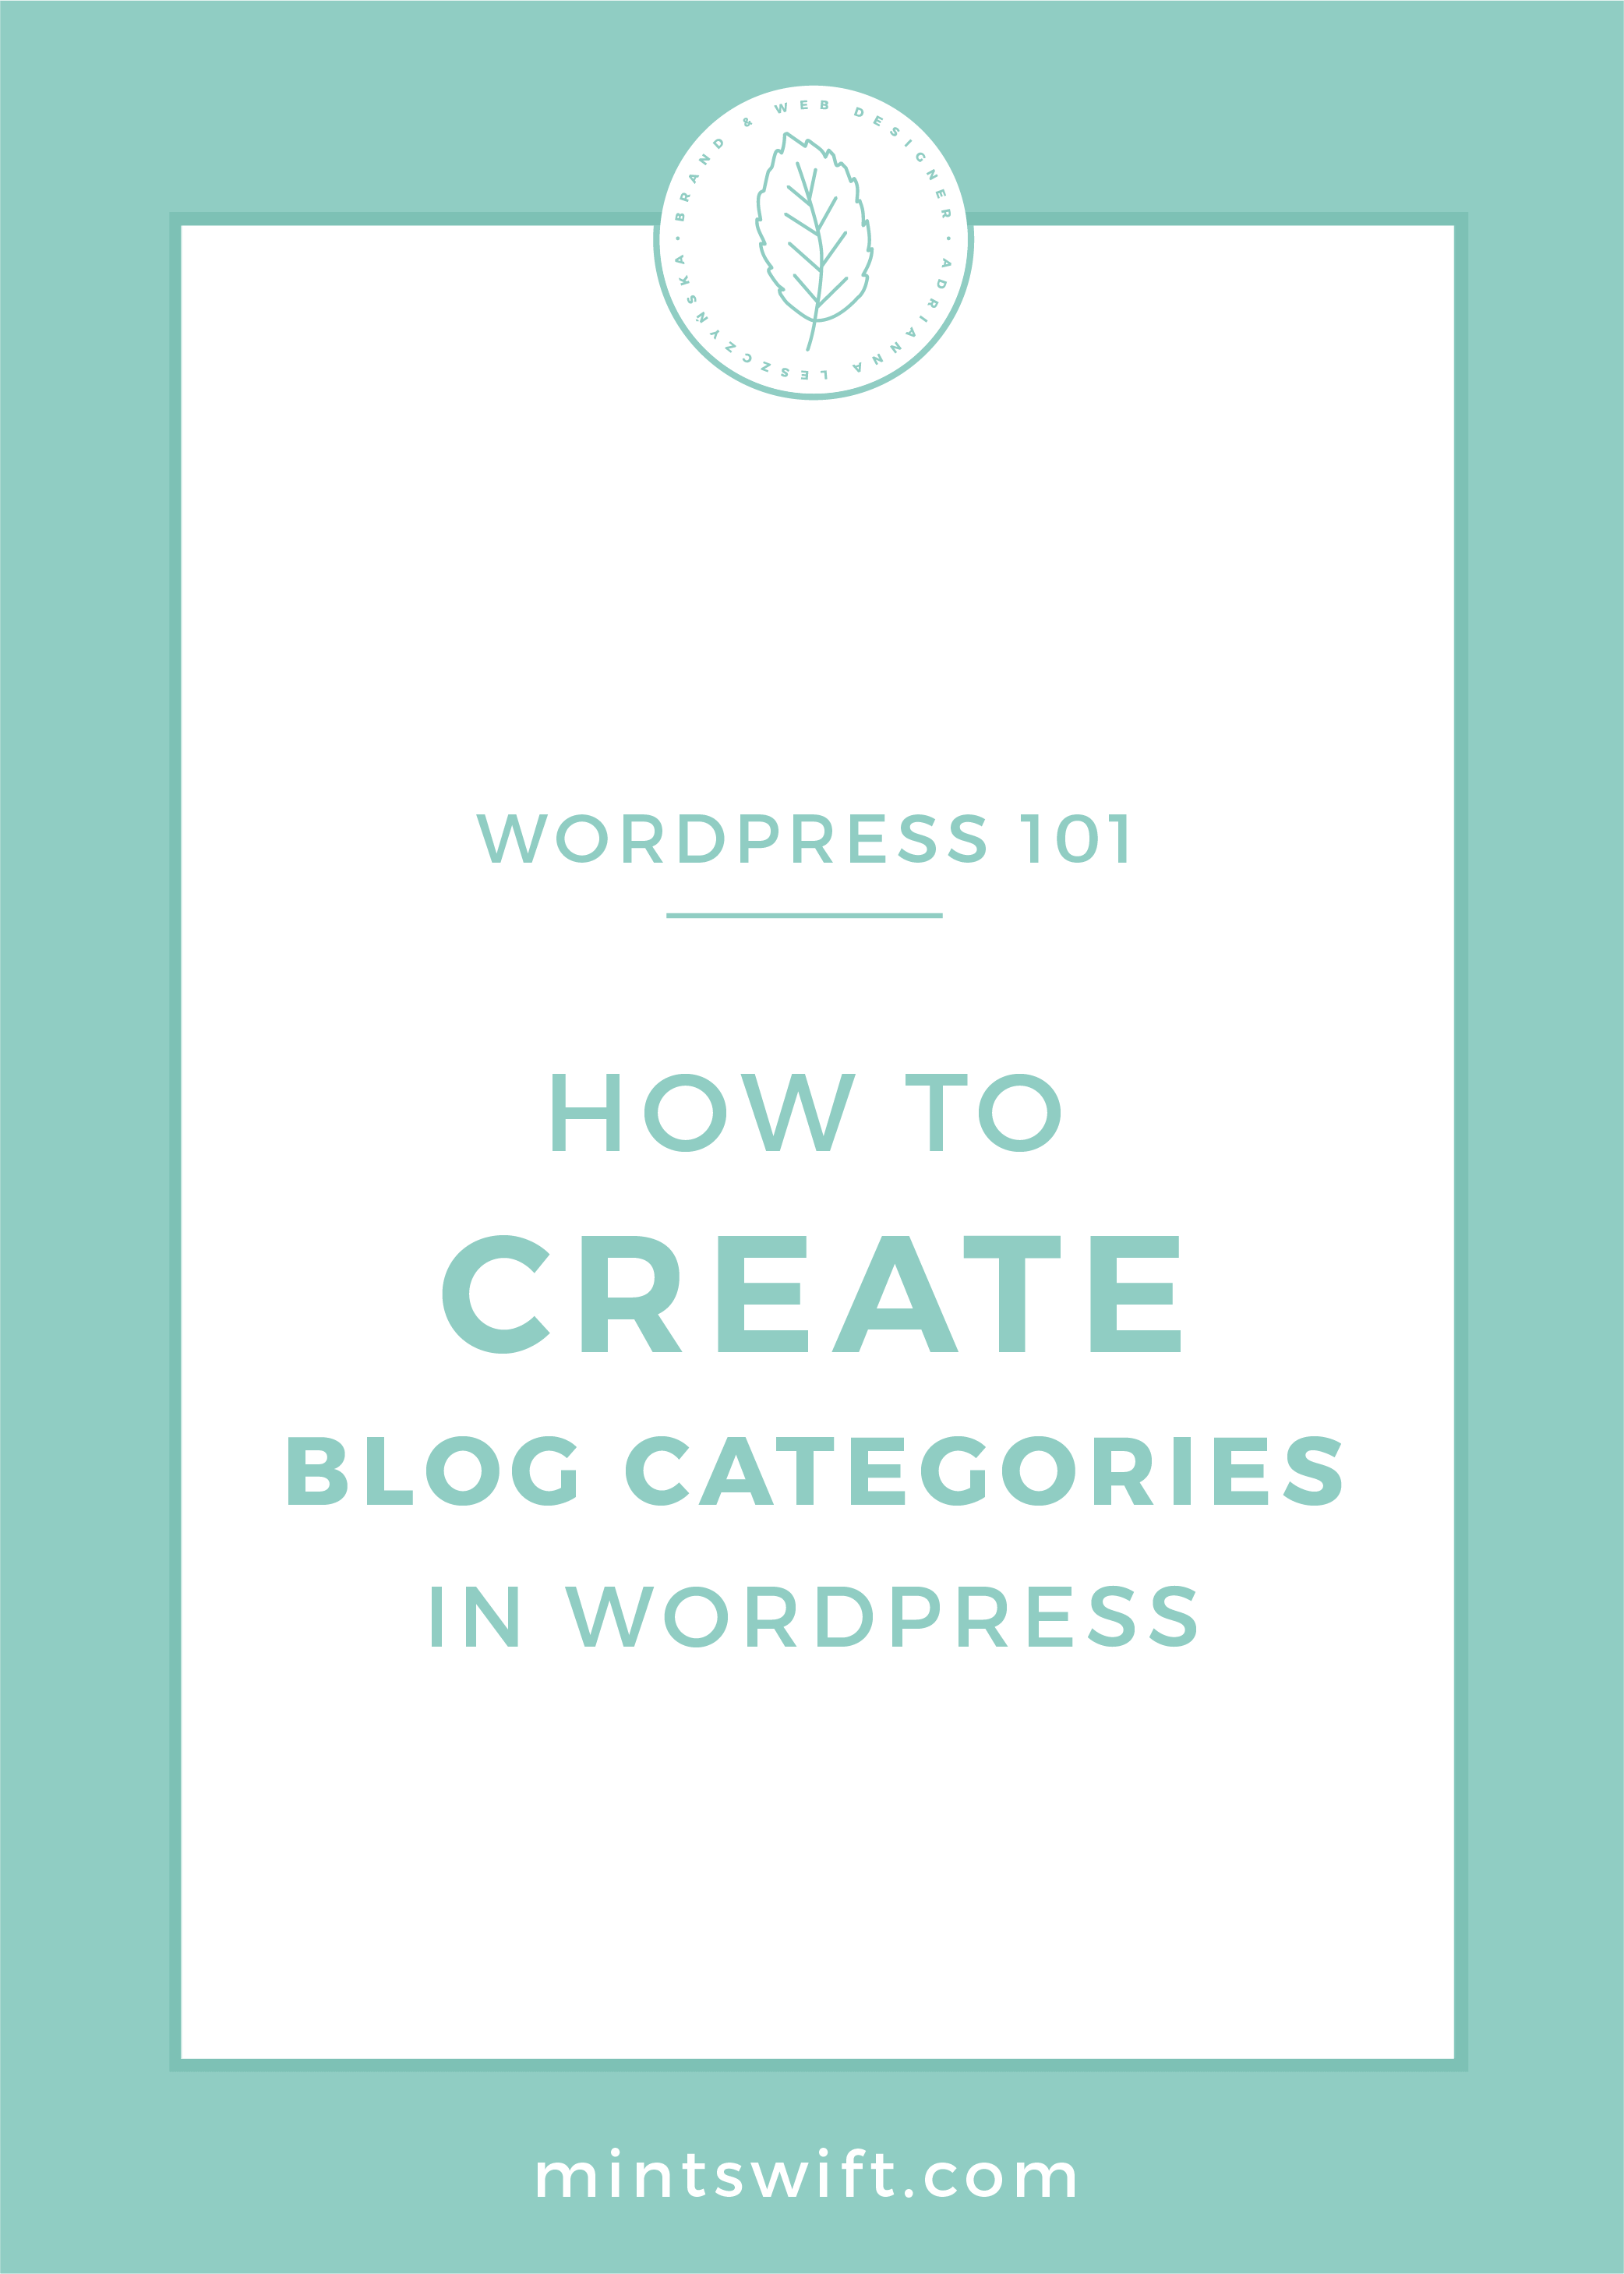 How to Create Blog Categories in WordPress by MintSwift